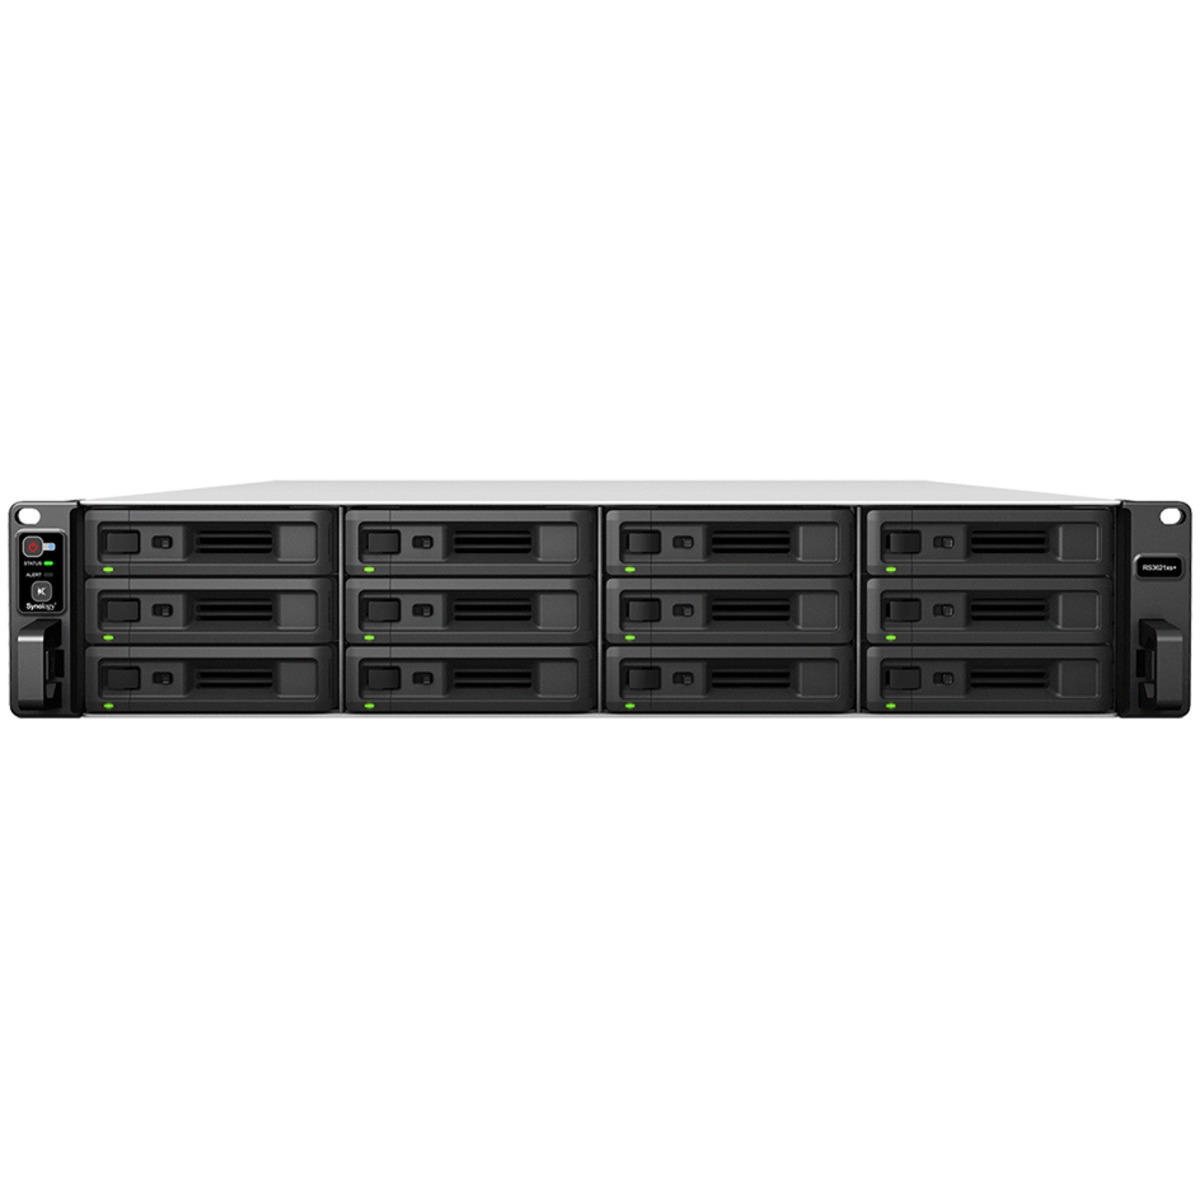 buy $6761 Synology RackStation RS3621xs+ 12tb RackMount NAS - Network Attached Storage Device 12x1000gb Crucial MX500 CT1000MX500SSD1 2.5 SATA 6Gb/s SSD CONSUMER Class Drives Installed - Burn-In Tested - nas headquarters buy network attached storage server device das new raid-5 free shipping usa holiday new year clearance sale RackStation RS3621xs+